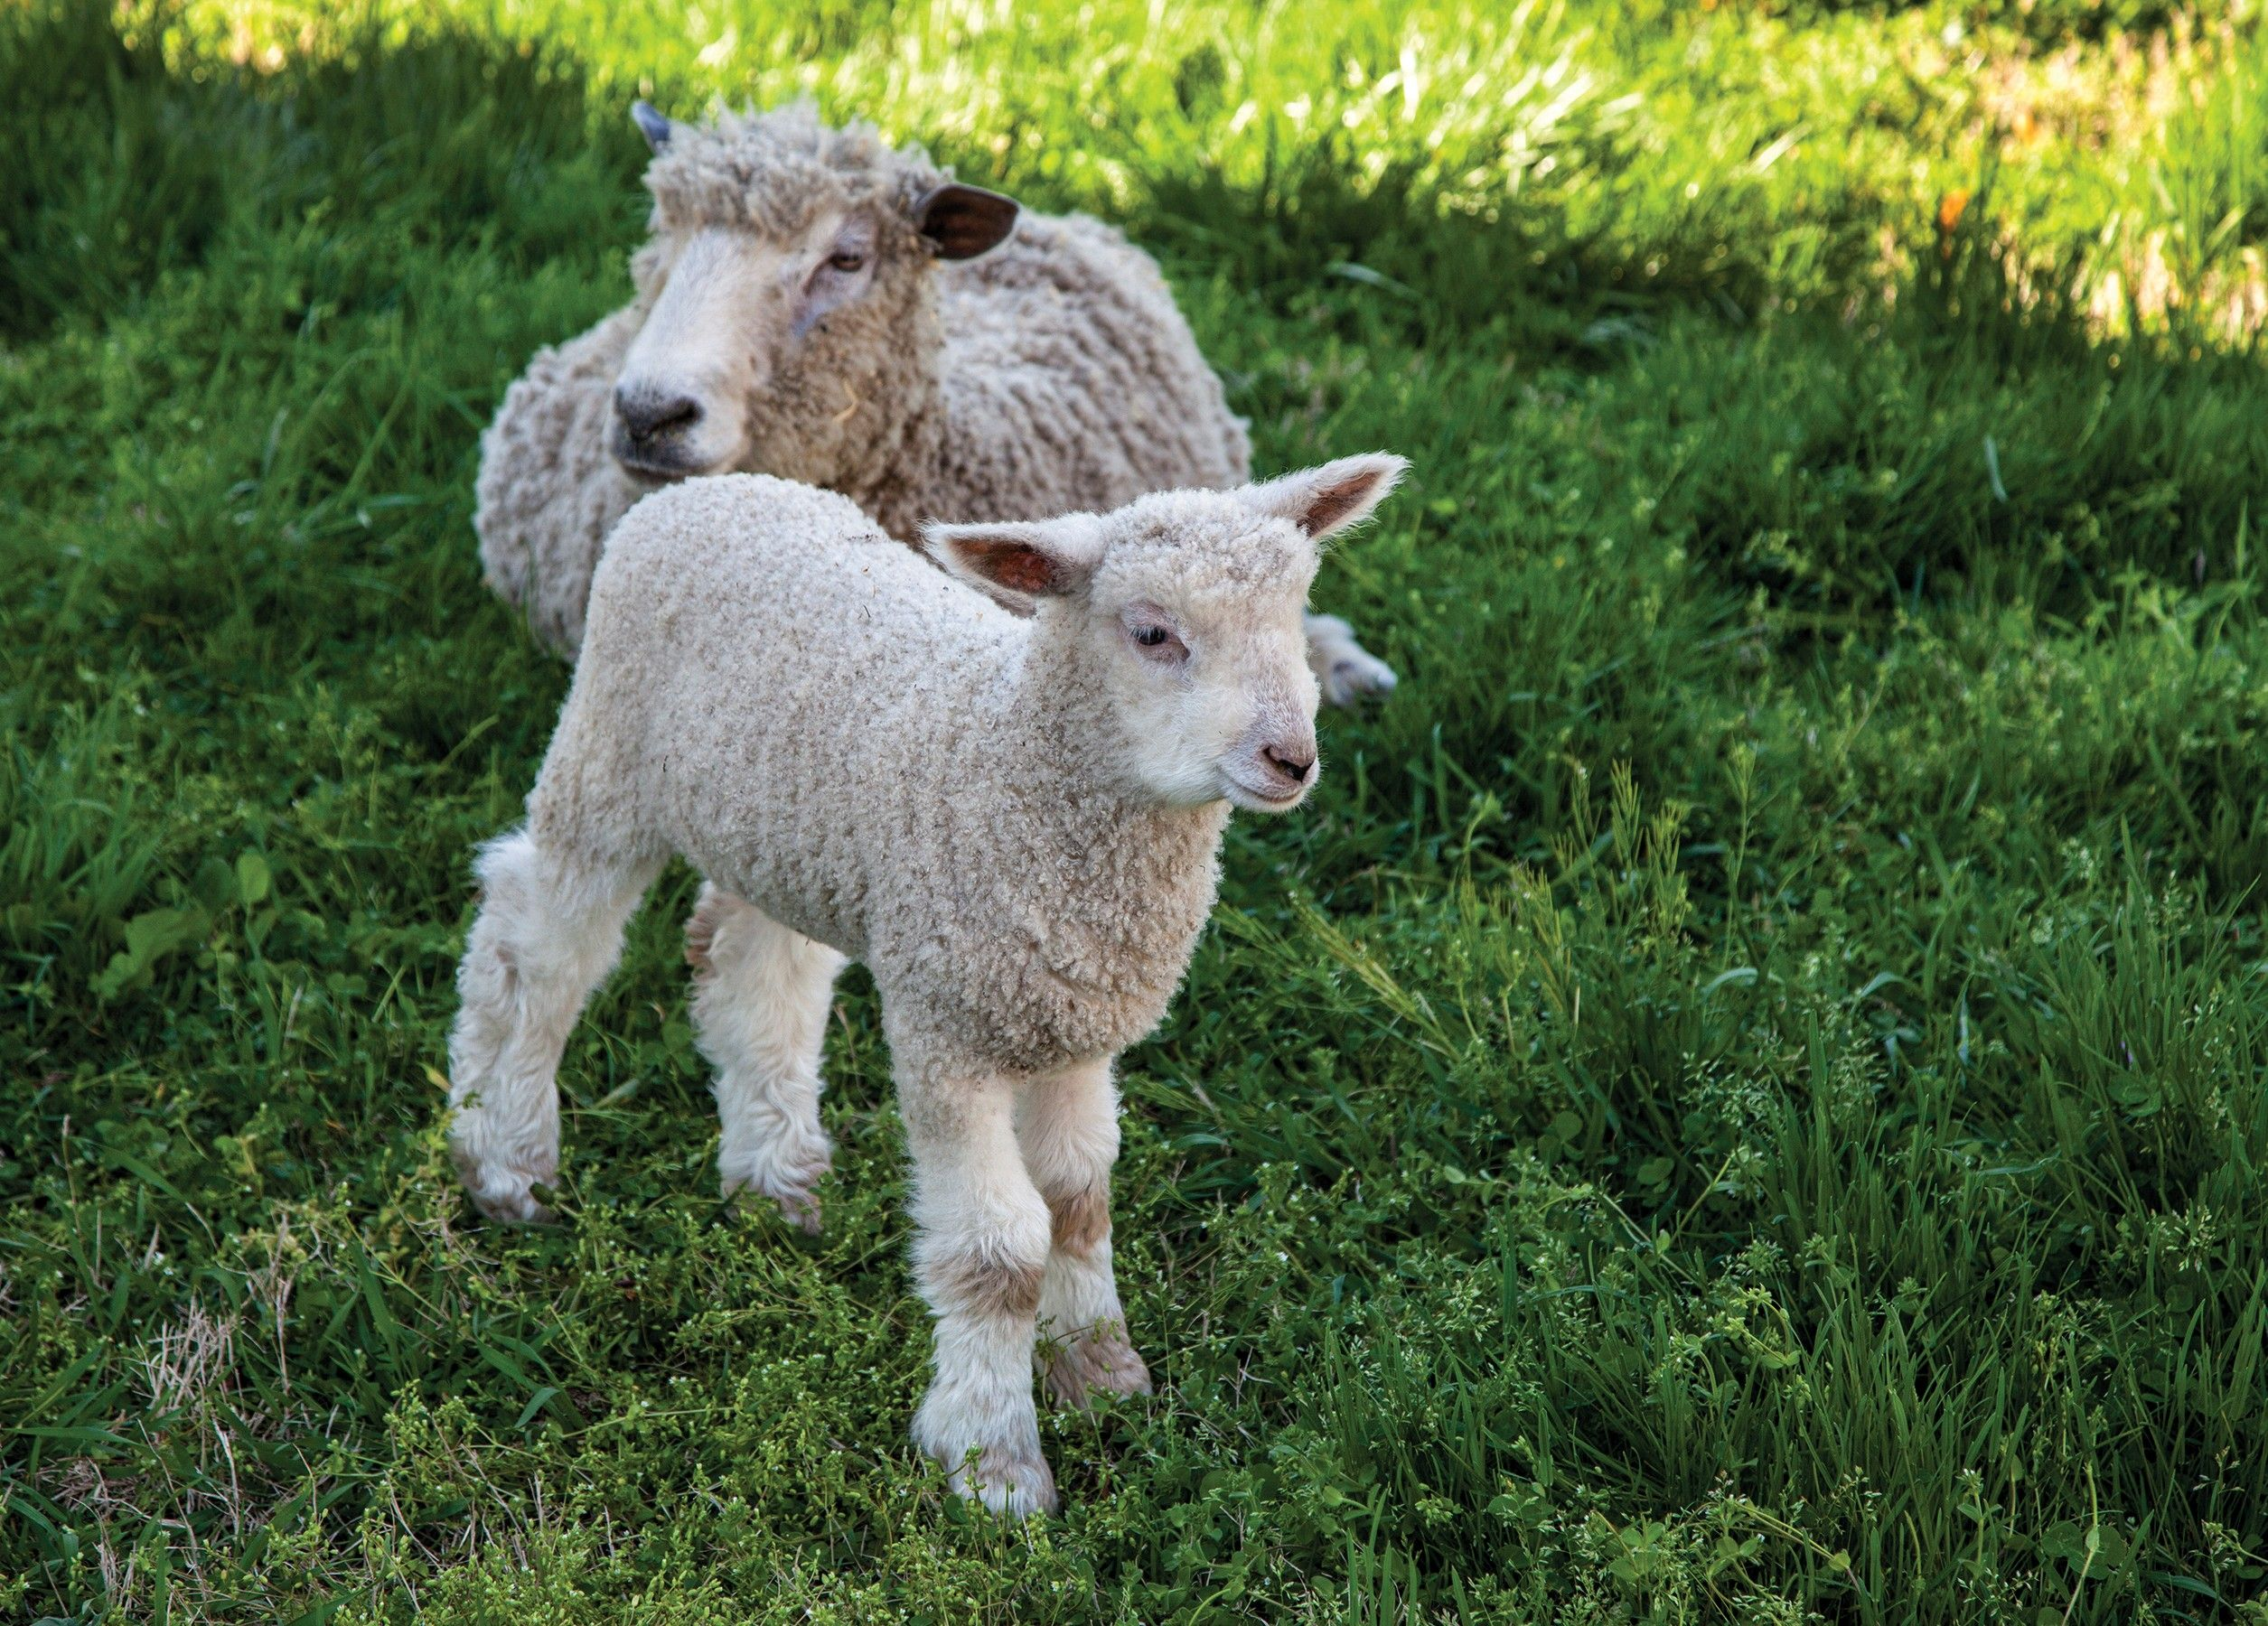 A small lamb standing next to its mother.